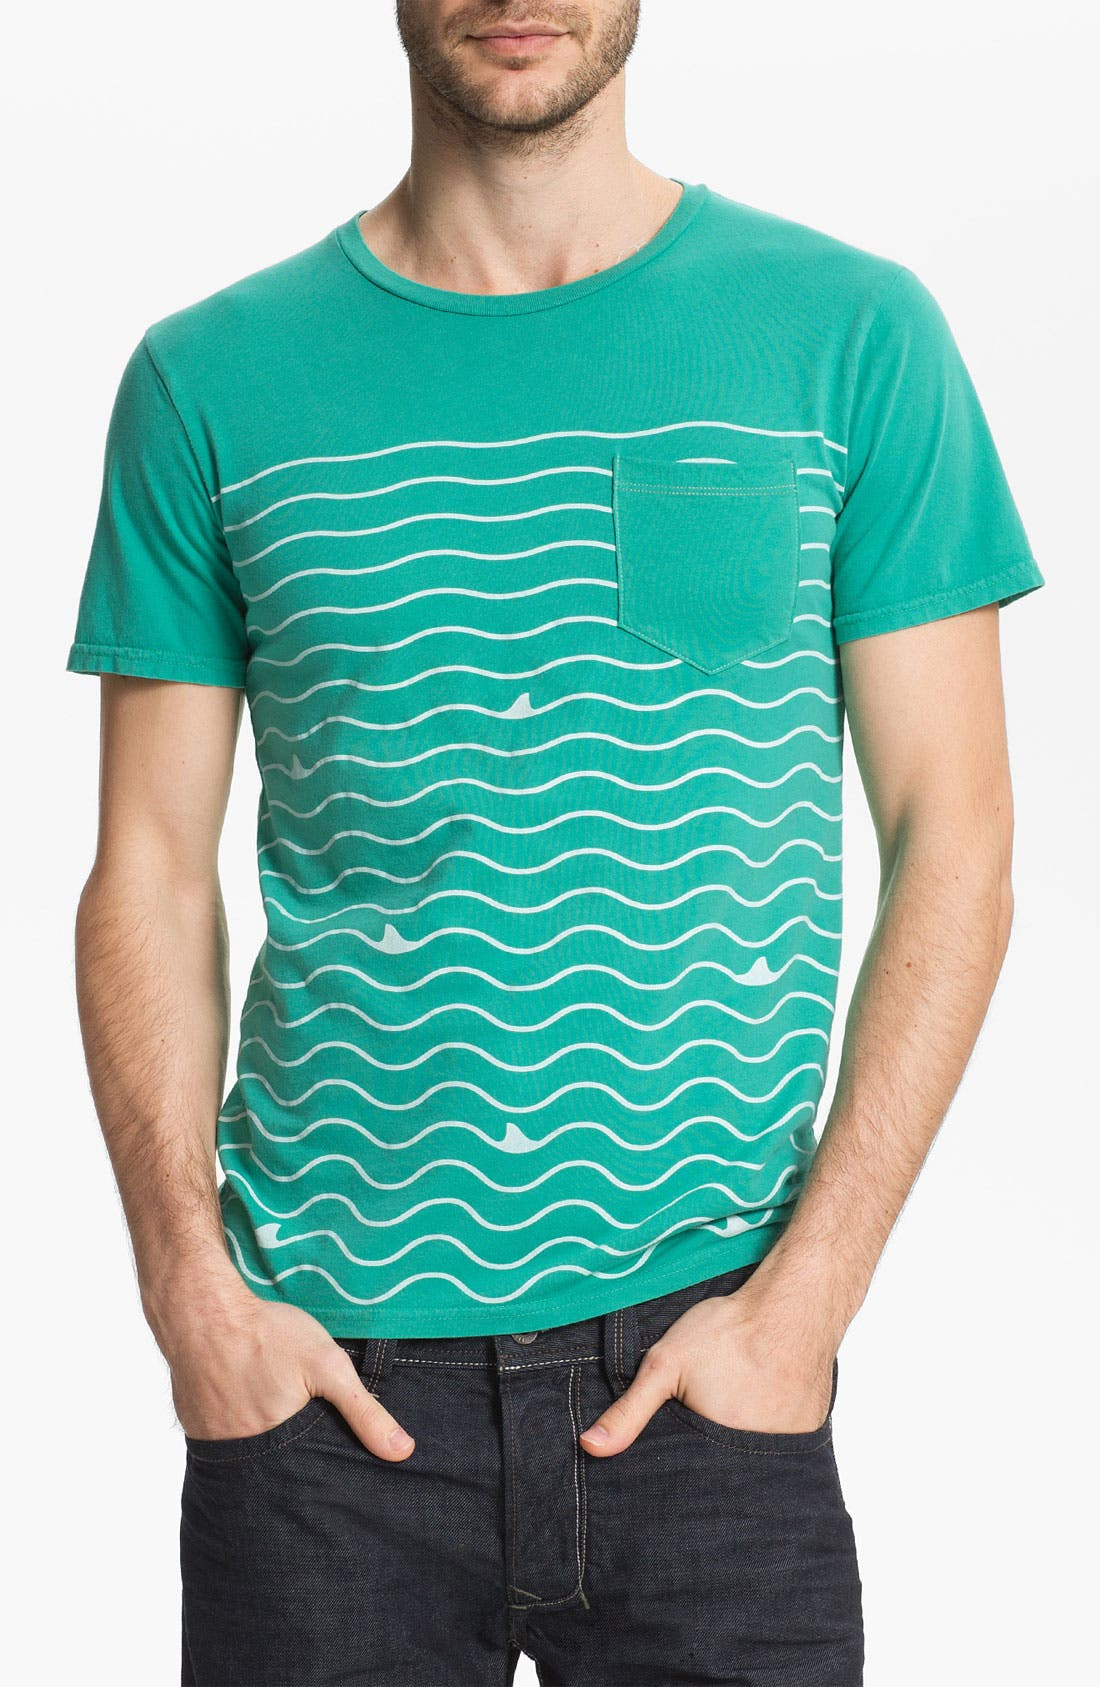 Main Image - Altru 'Shark Lines' Pocket T-Shirt